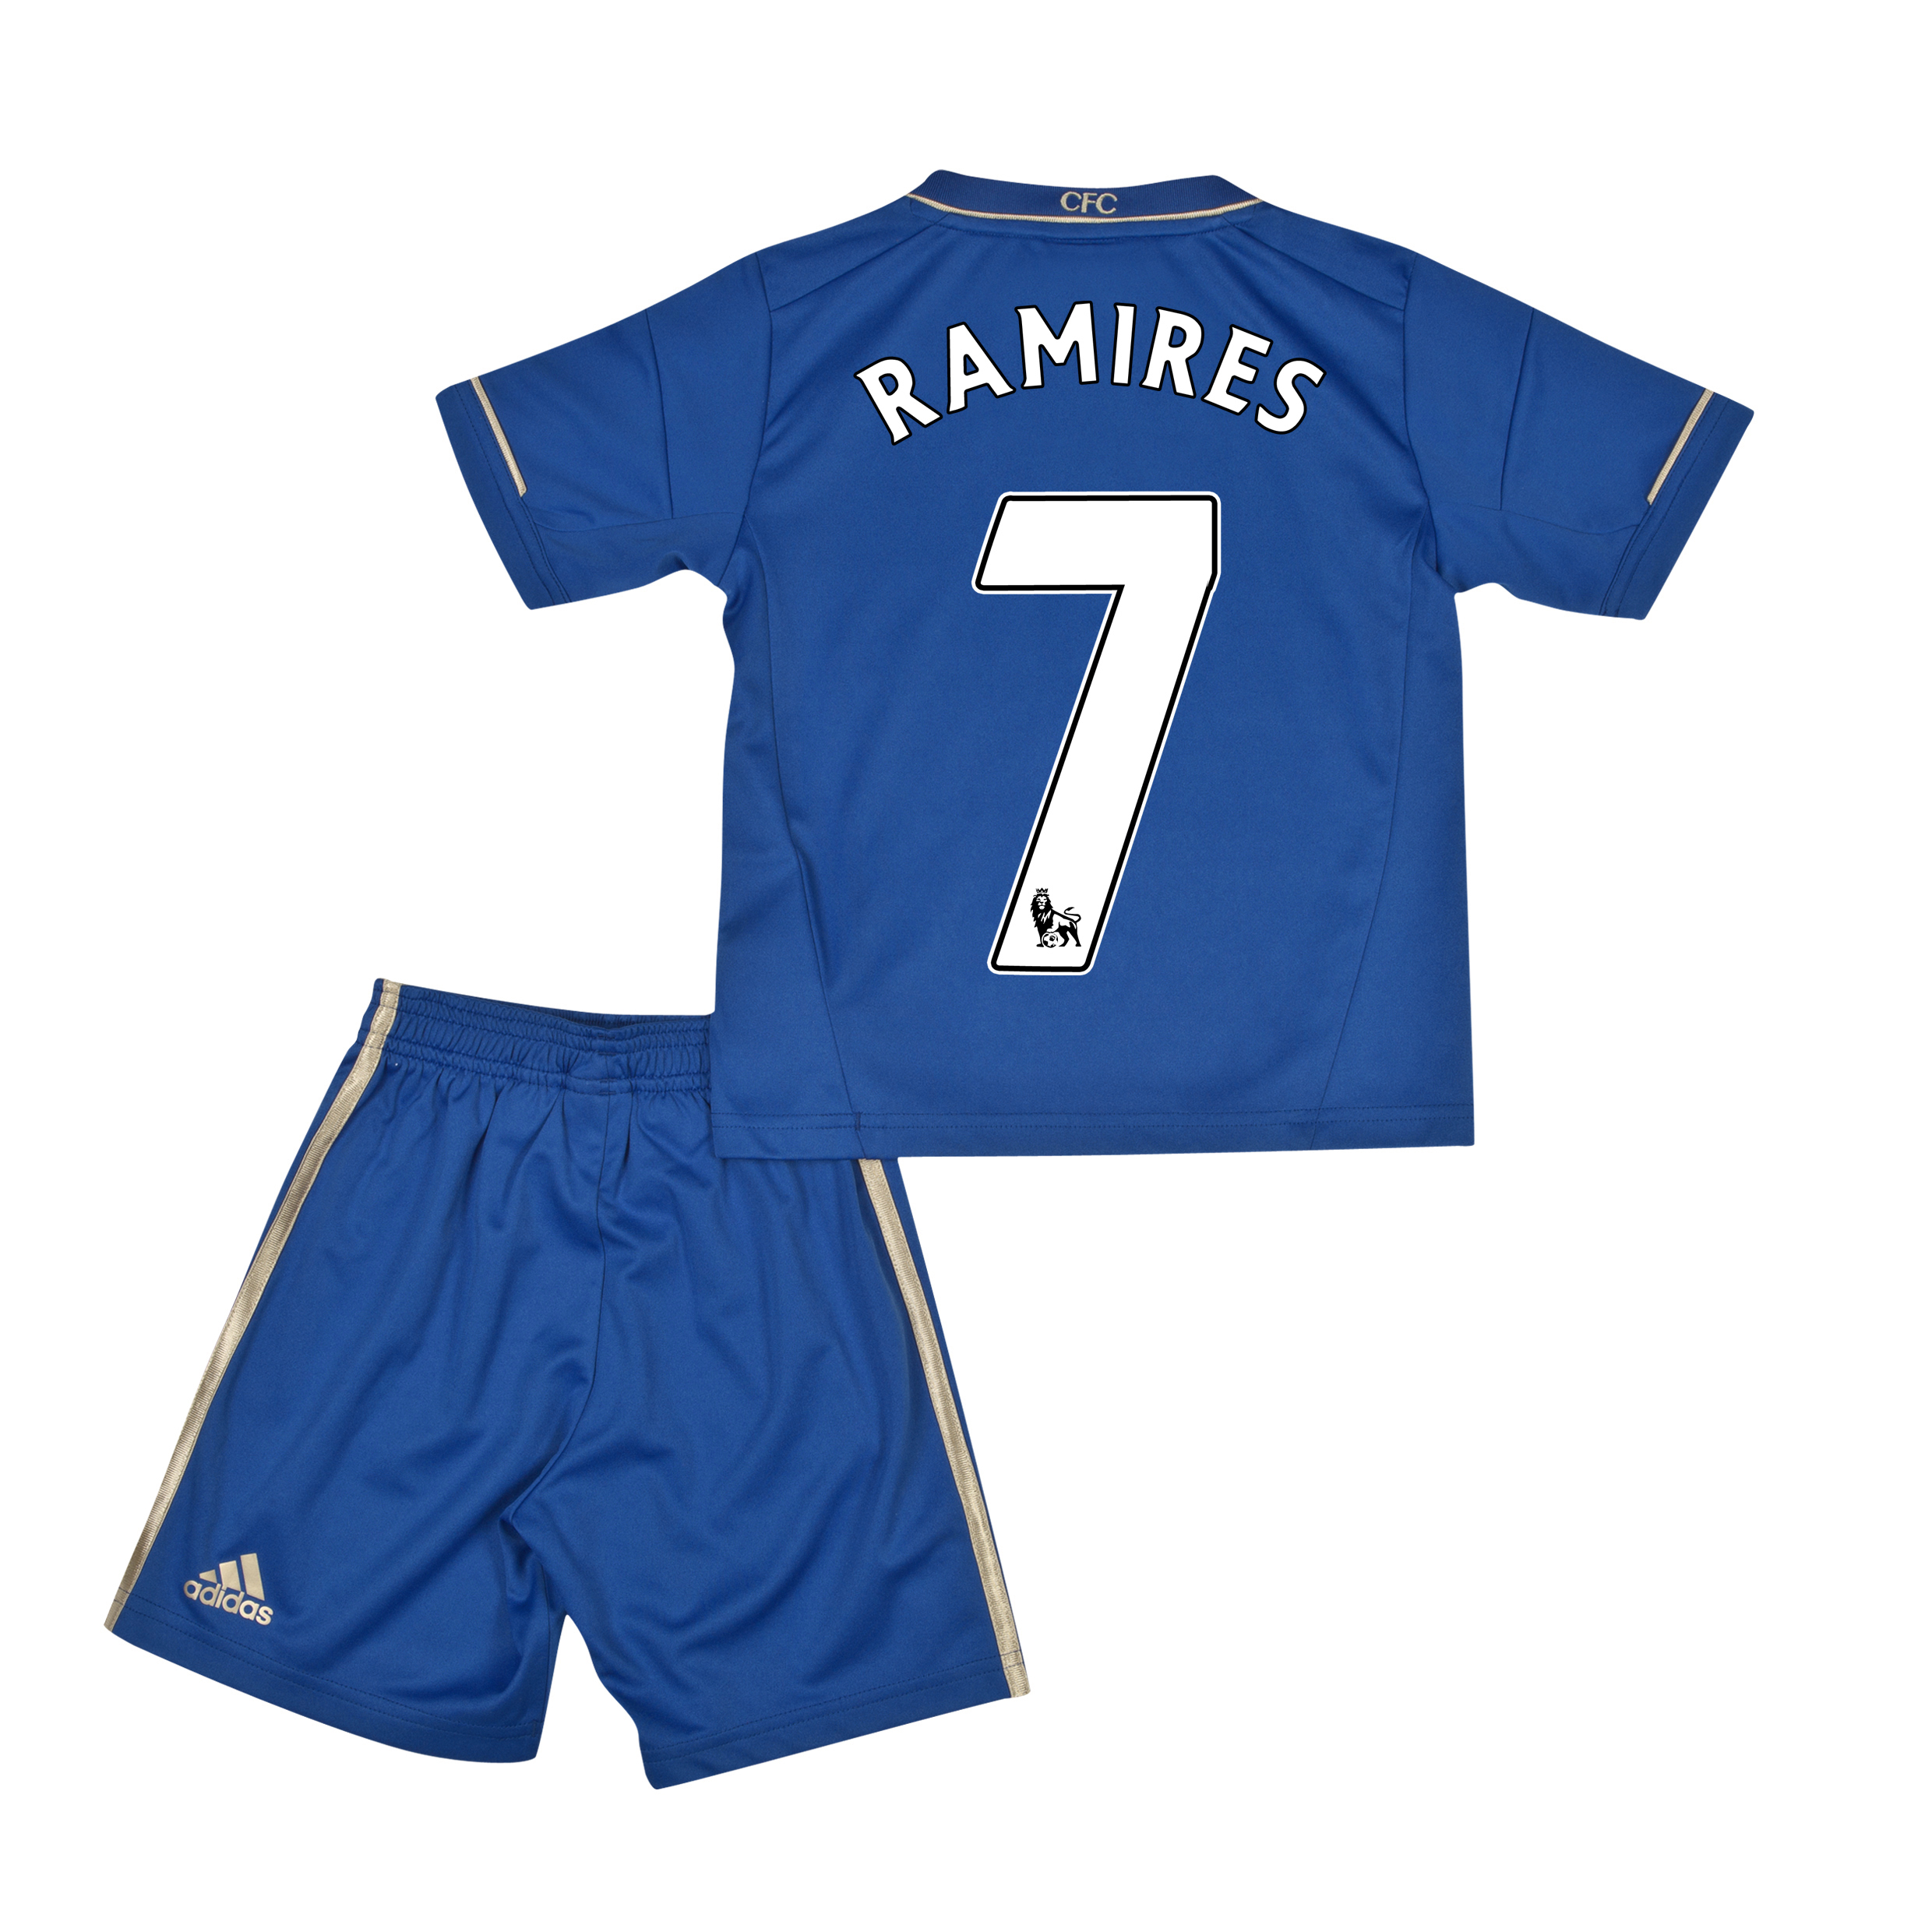 Chelsea Home Mini Kit 2012/13 with Ramires 7 printing